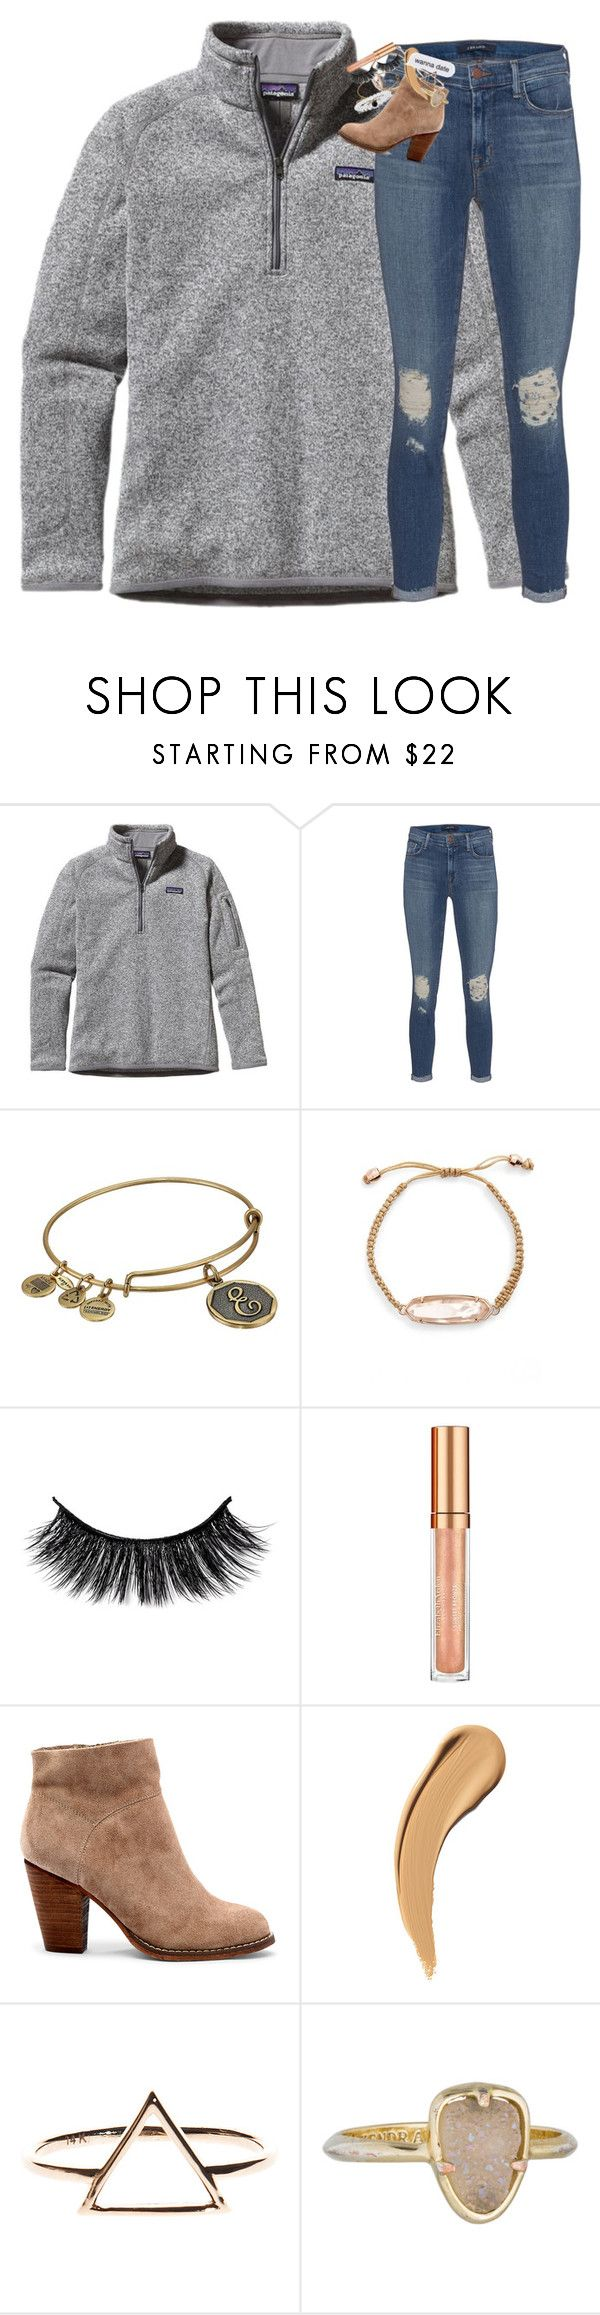 """""""silent people have the loudest minds"""" by classynsouthern ❤ liked on Polyvore featuring Patagonia, J Brand, Alex and Ani, Kendra Scott, Elizabeth Arden and Sole Society"""